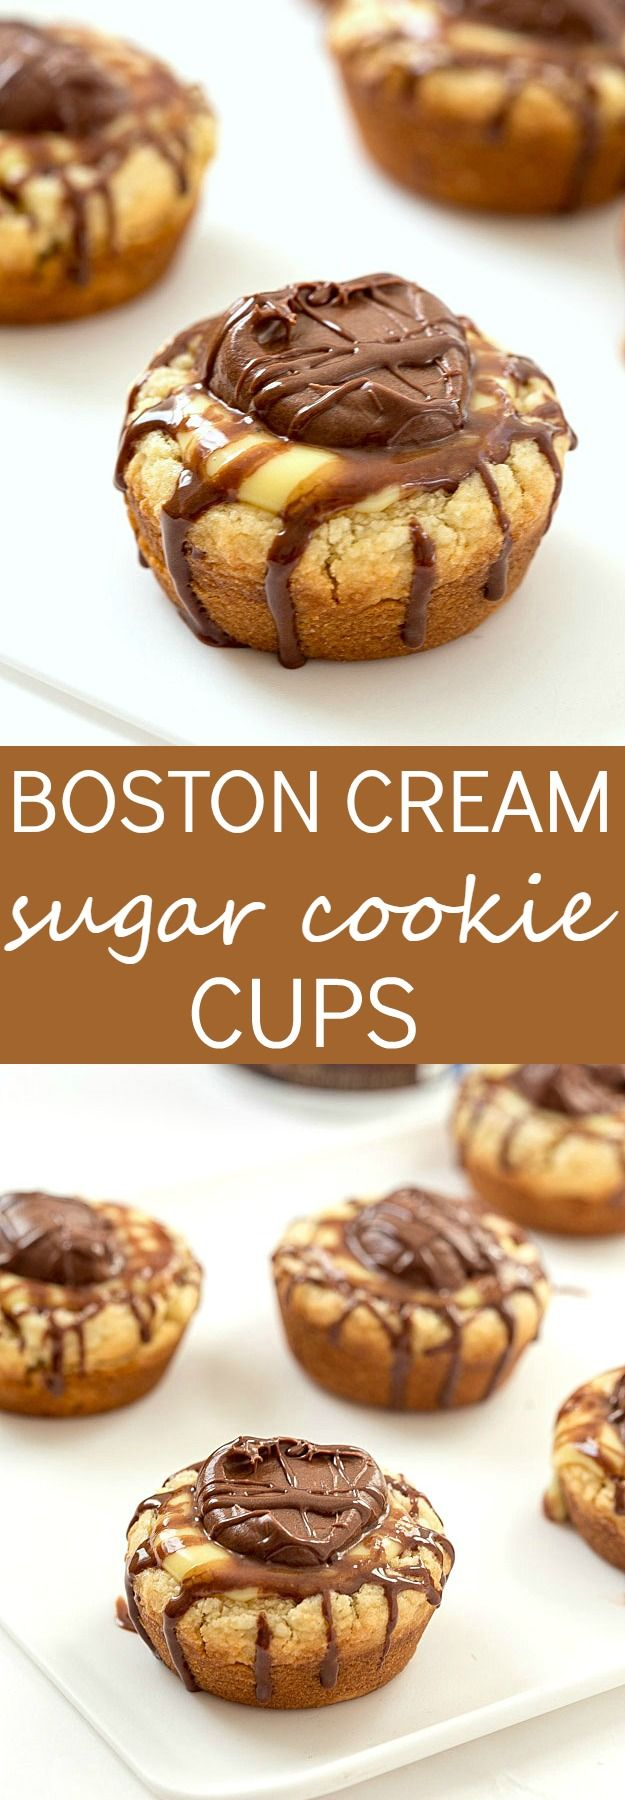 Boston Cream Sugar Cookie Cups - So easy anyone will be able to bake these! Sugar cookie cups baking with vanilla pudding in the center and topped with a dollop of chocolate fudge frosting. So good.